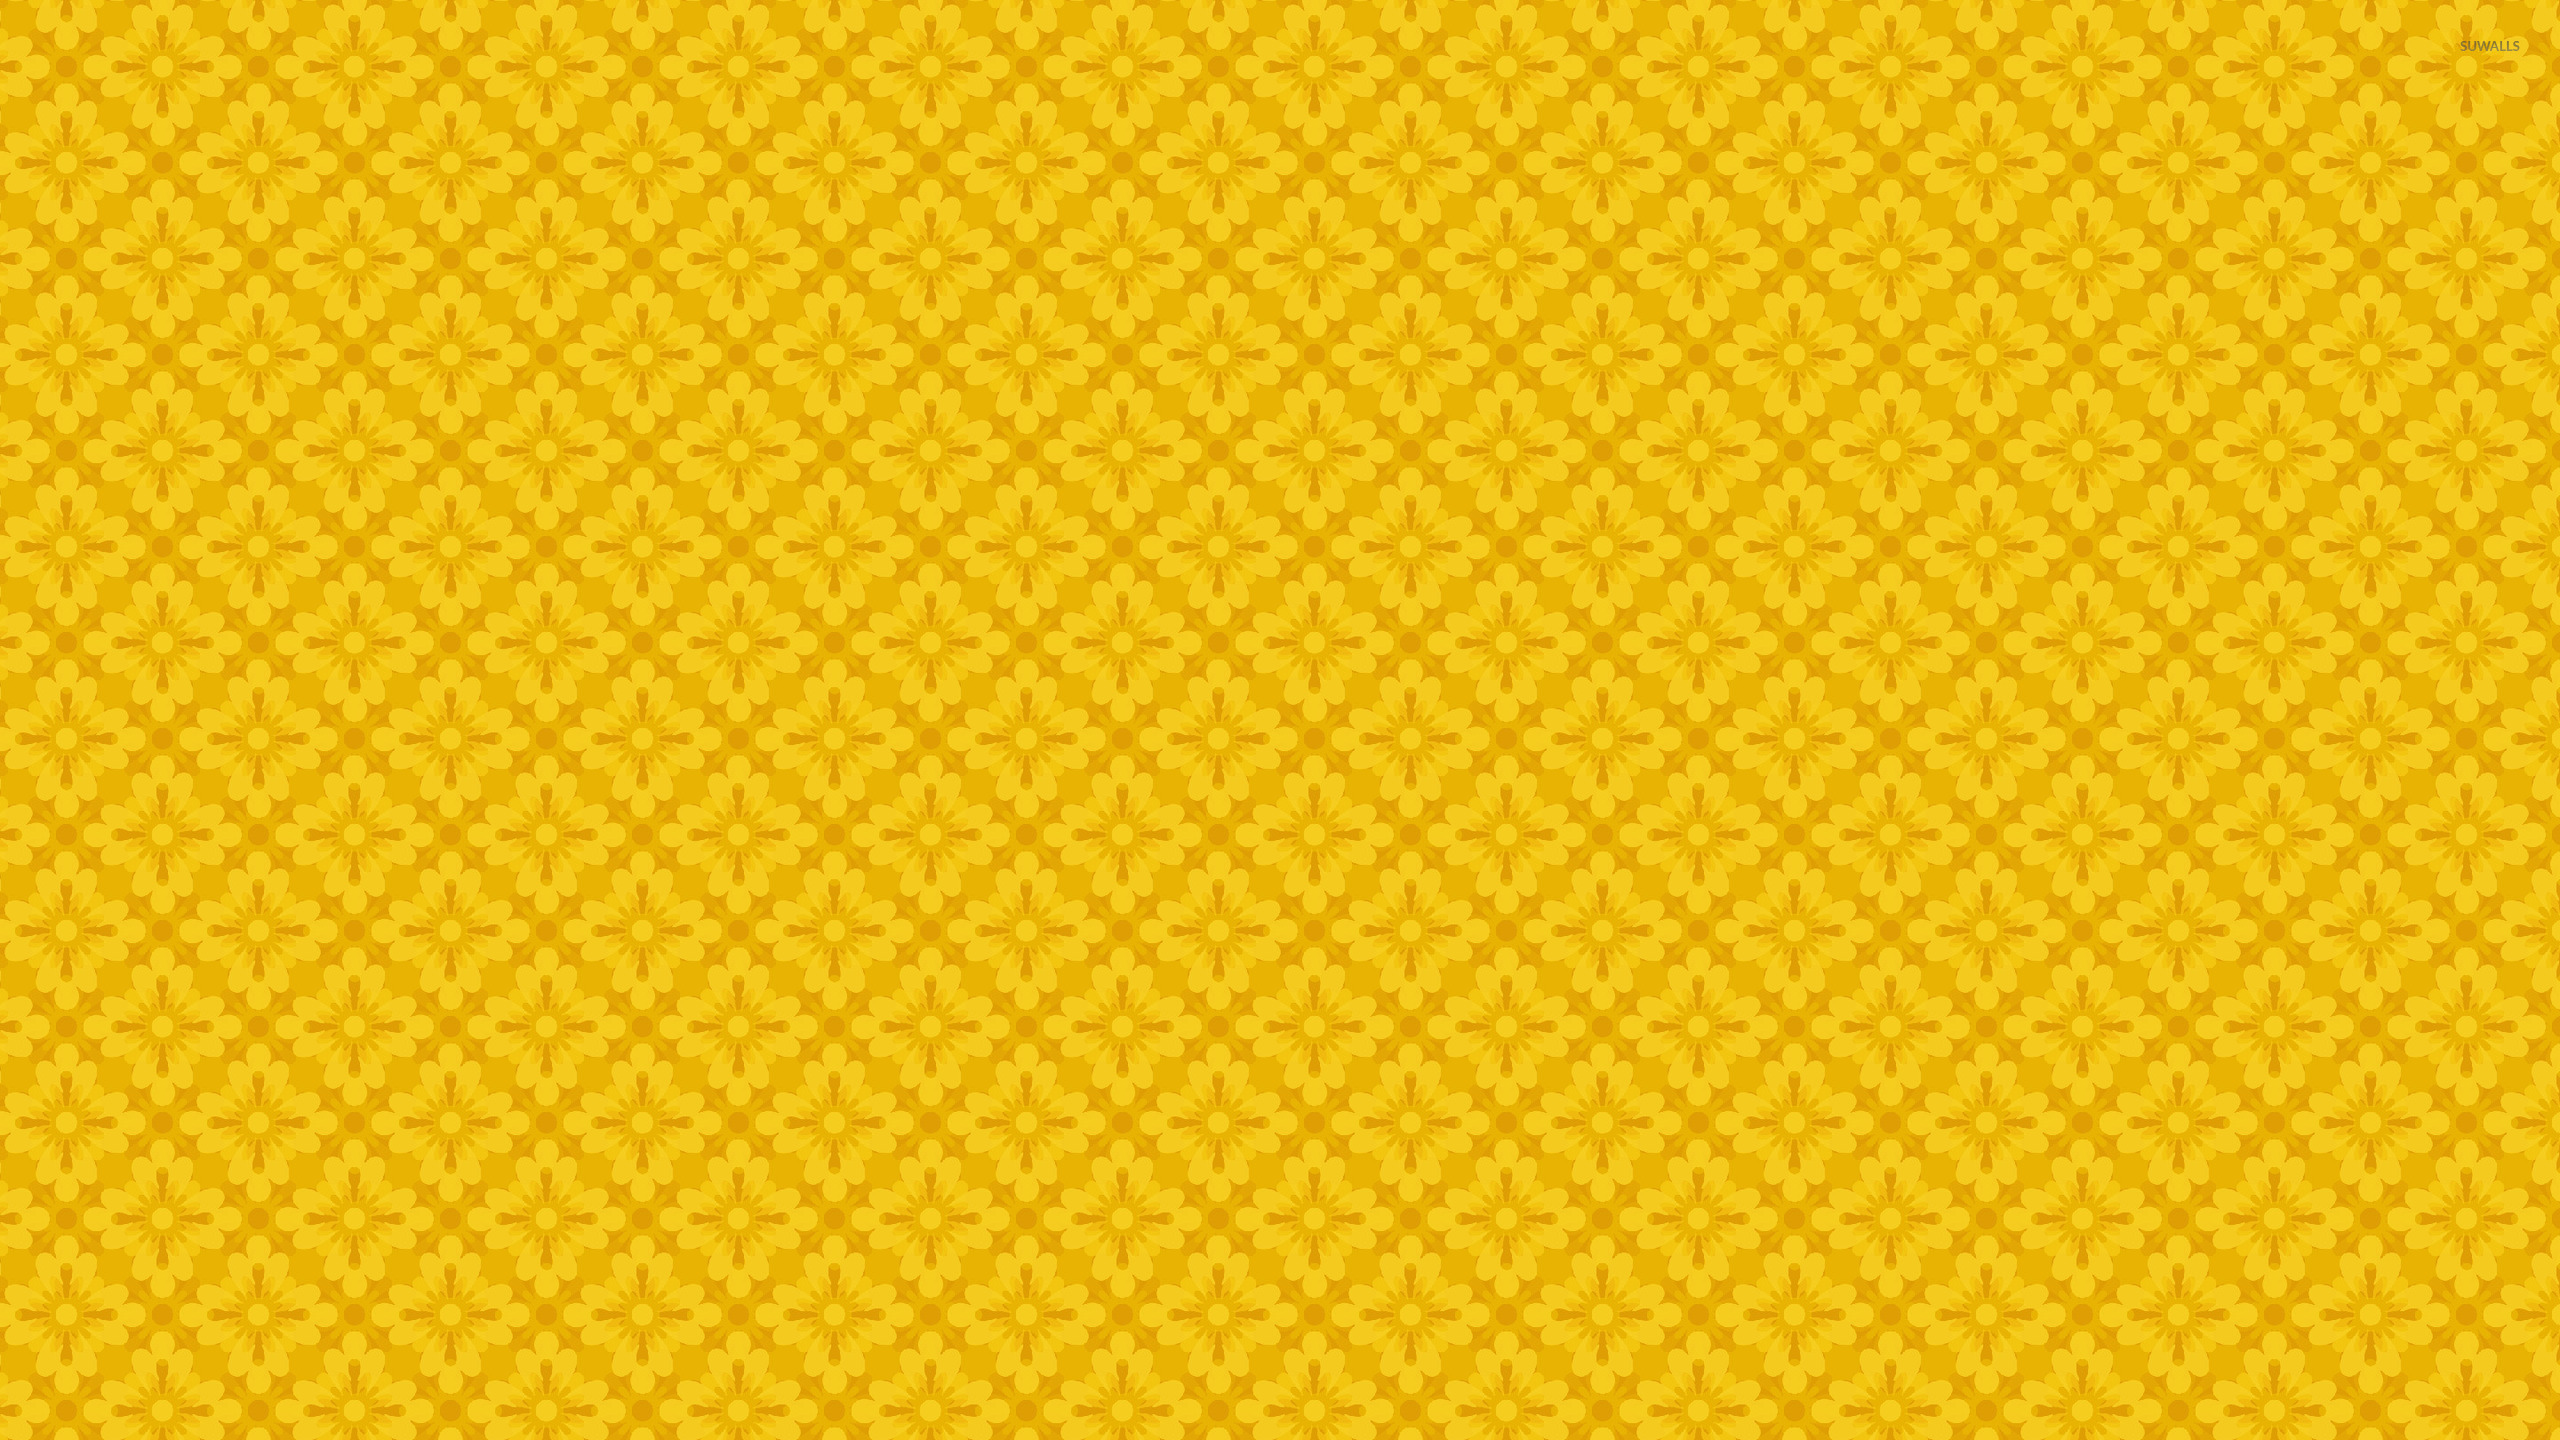 yellow floral pattern - photo #24